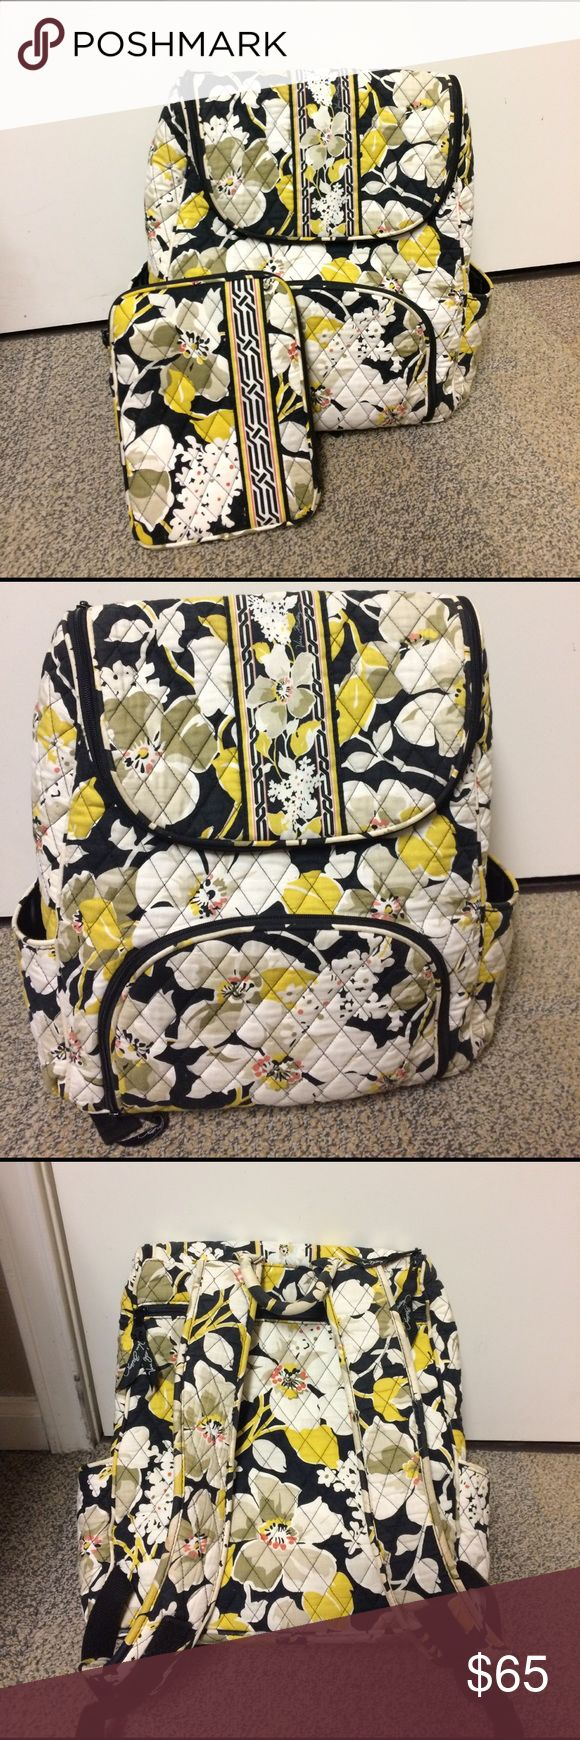 Vera Bradley Backpack & iPad Mini Case Fabric backpack, many pockets for storage. Great for an overnight bag. No signs of wear and tear. Good condition! Vera Bradley Bags Backpacks